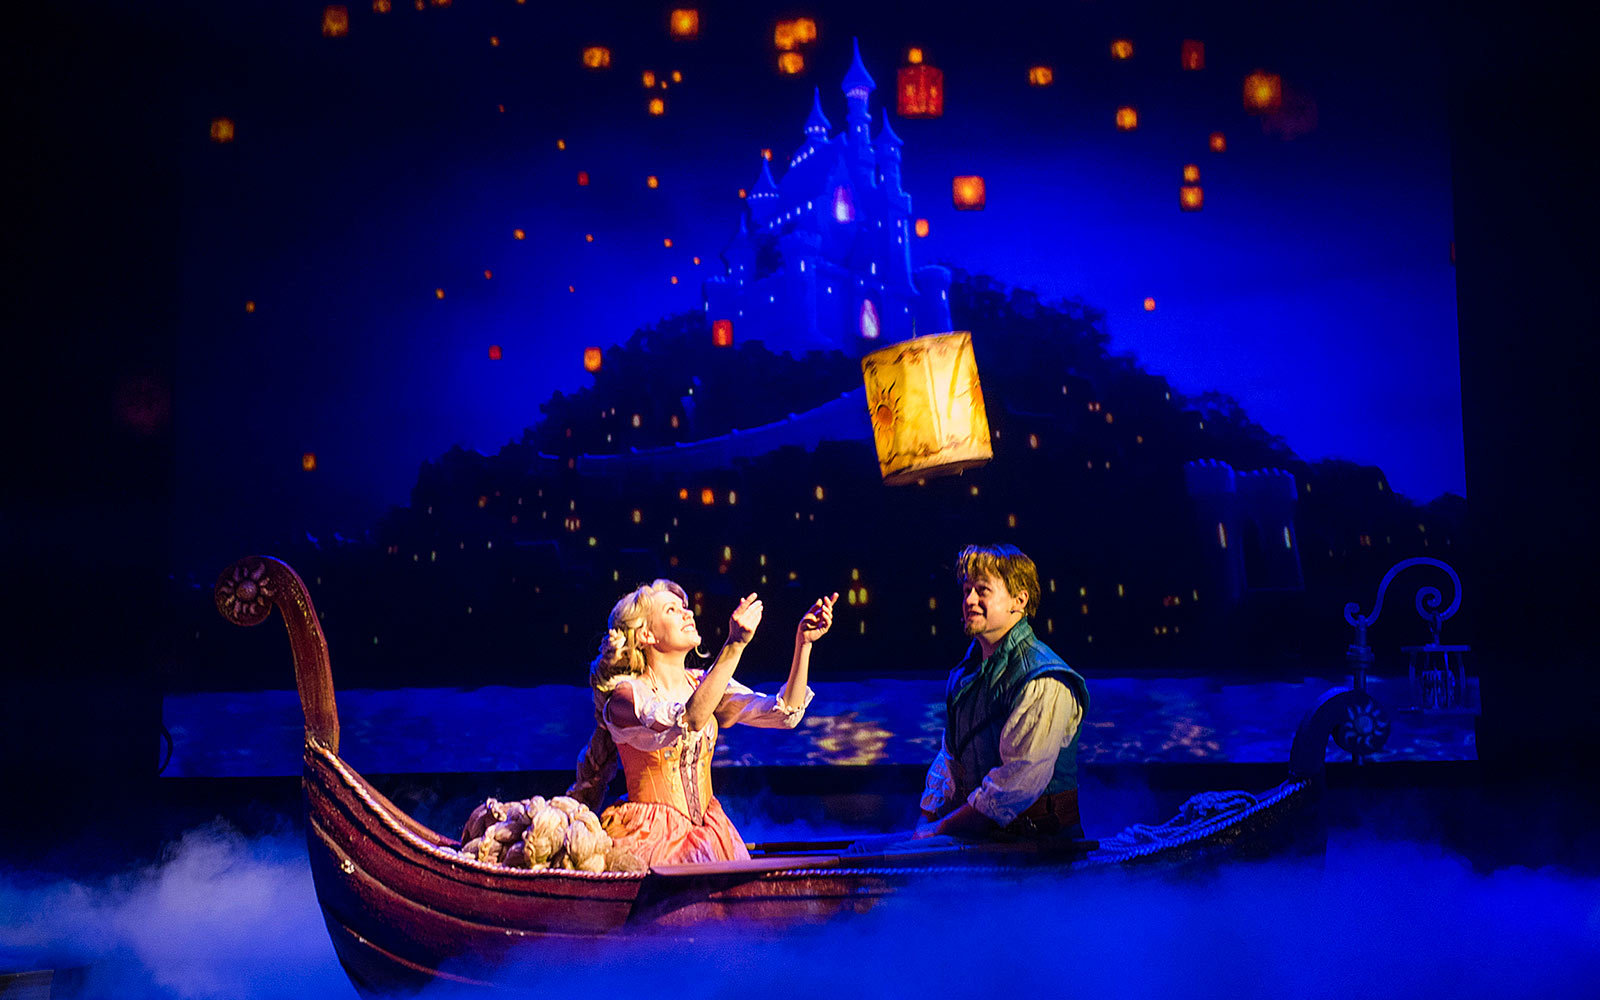 You can visit the world of Tangled without leaving the ship.